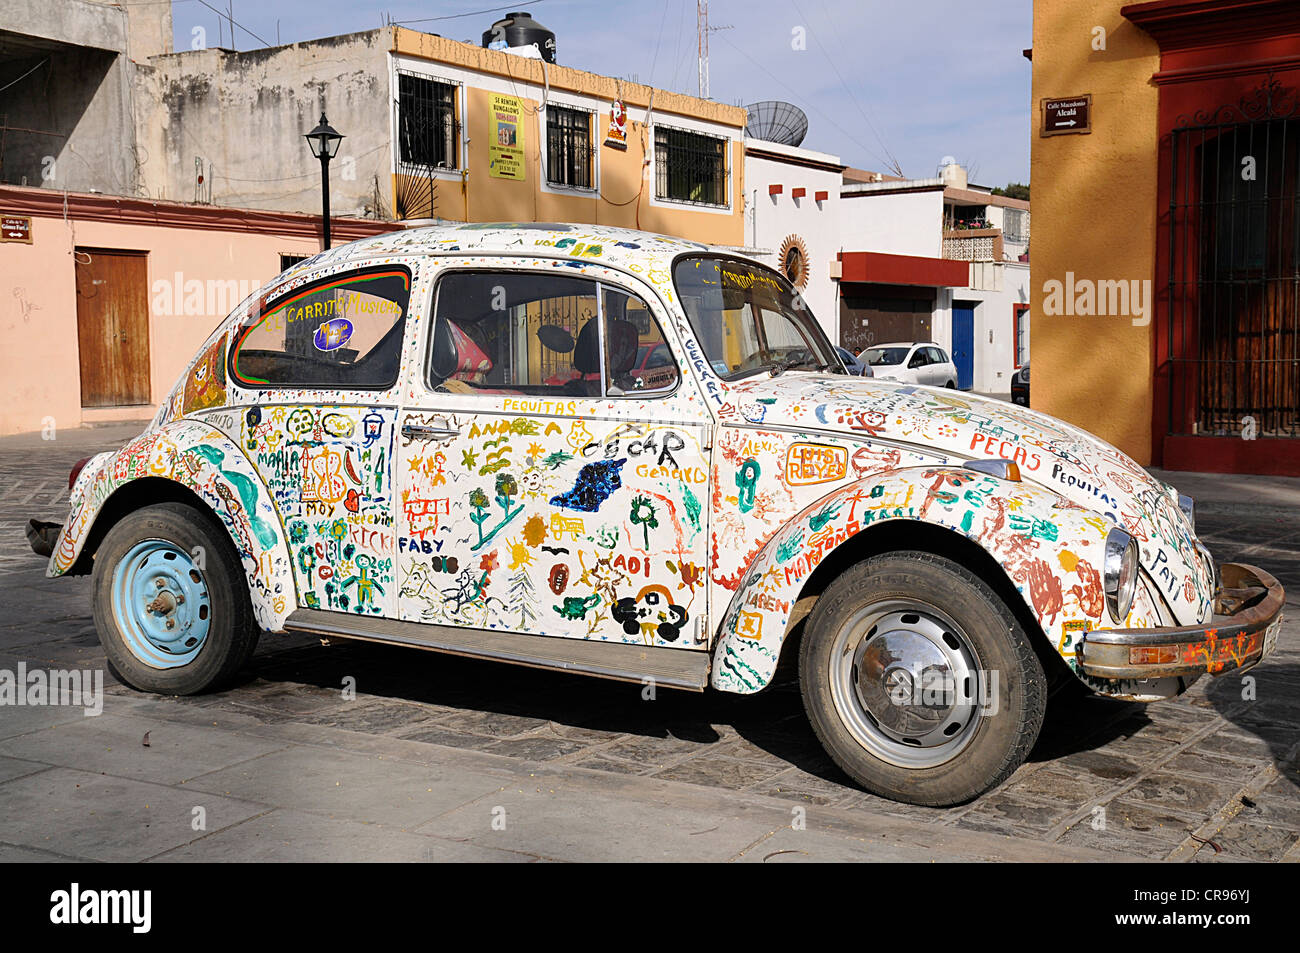 VW beetle decorated with graffiti, Oaxaca de Juárez, Oaxaca, southern Mexico, North America - Stock Image